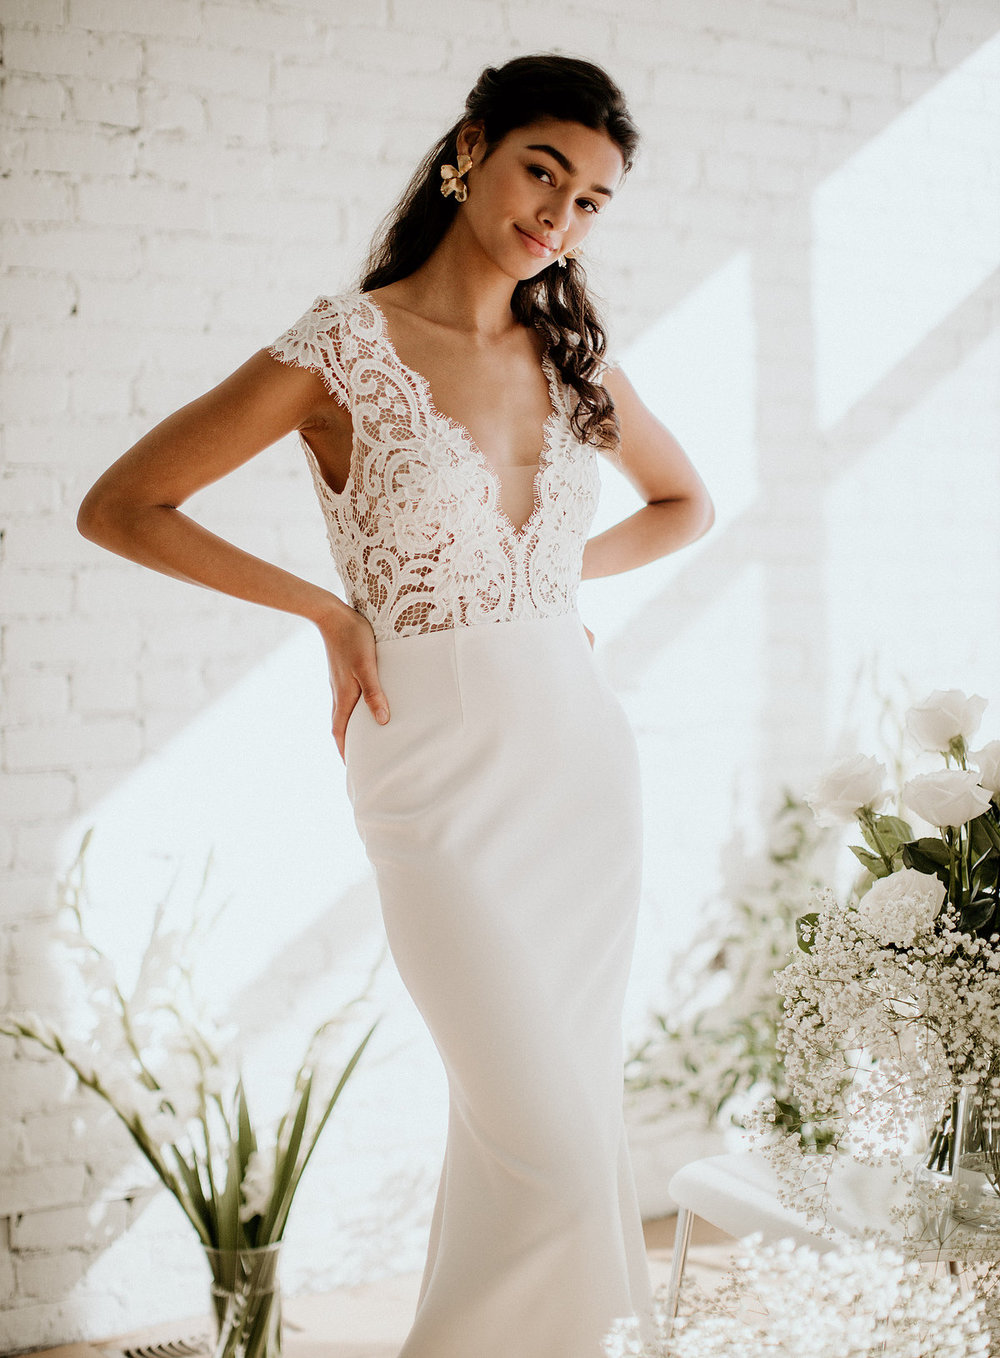 Vermont Everthine Bridal Boutique